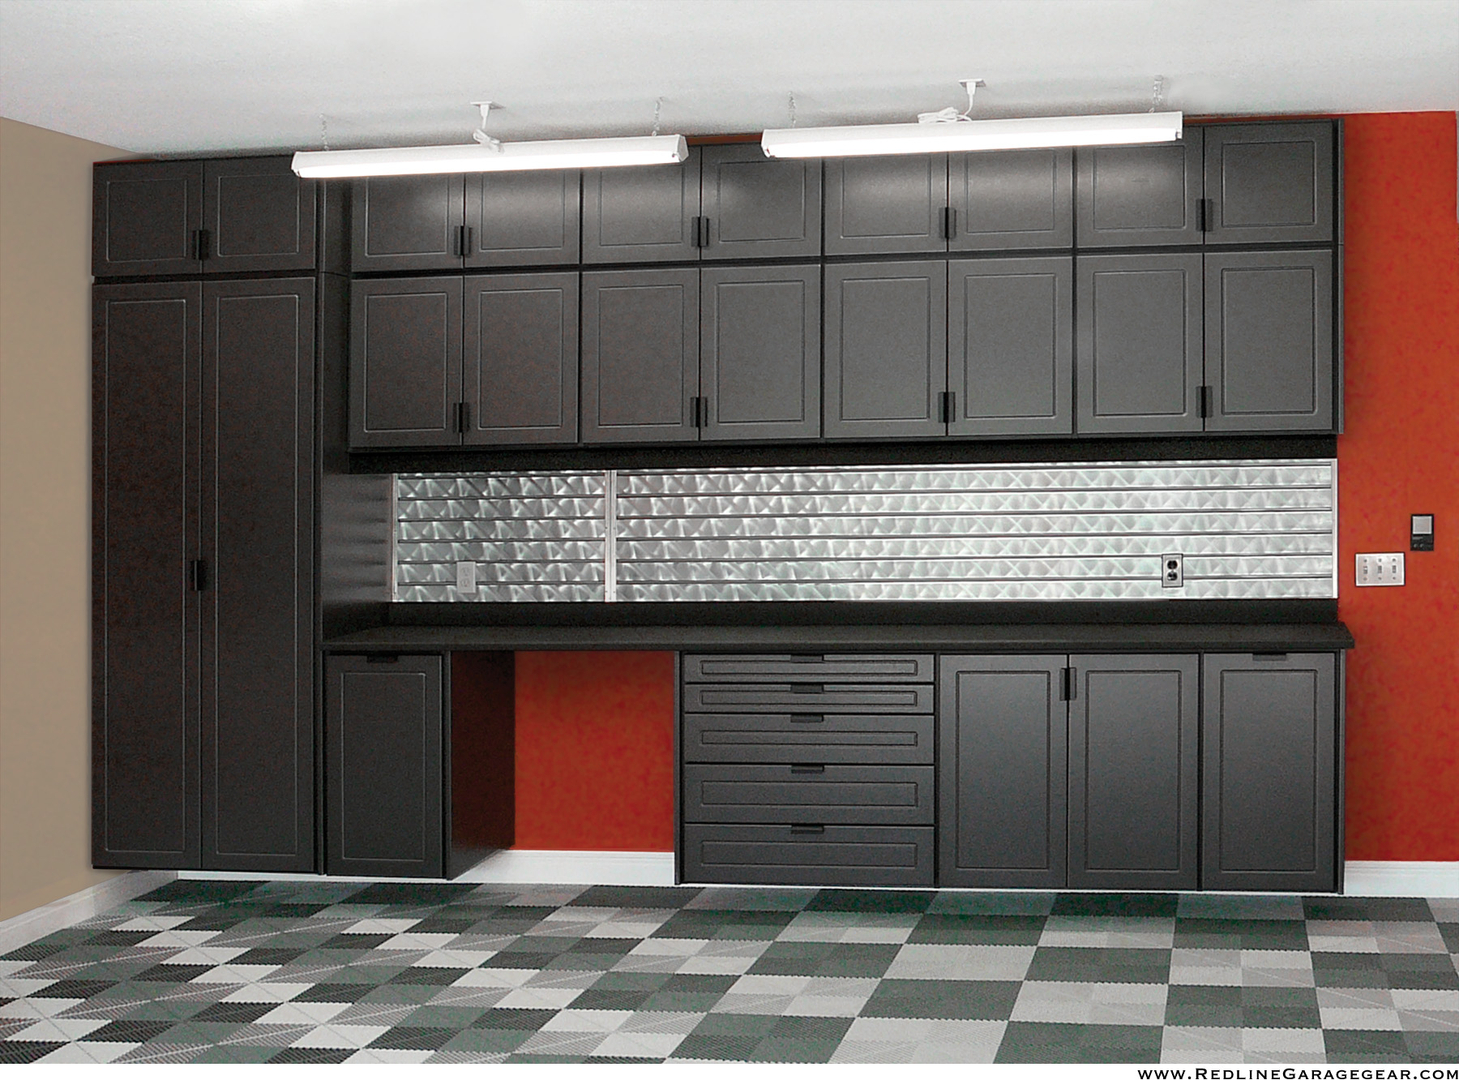 Old kitchen cabinets garage - Cabinets Attractive Powder Coated Colors Adjustable Shelving Lifetime Warranty